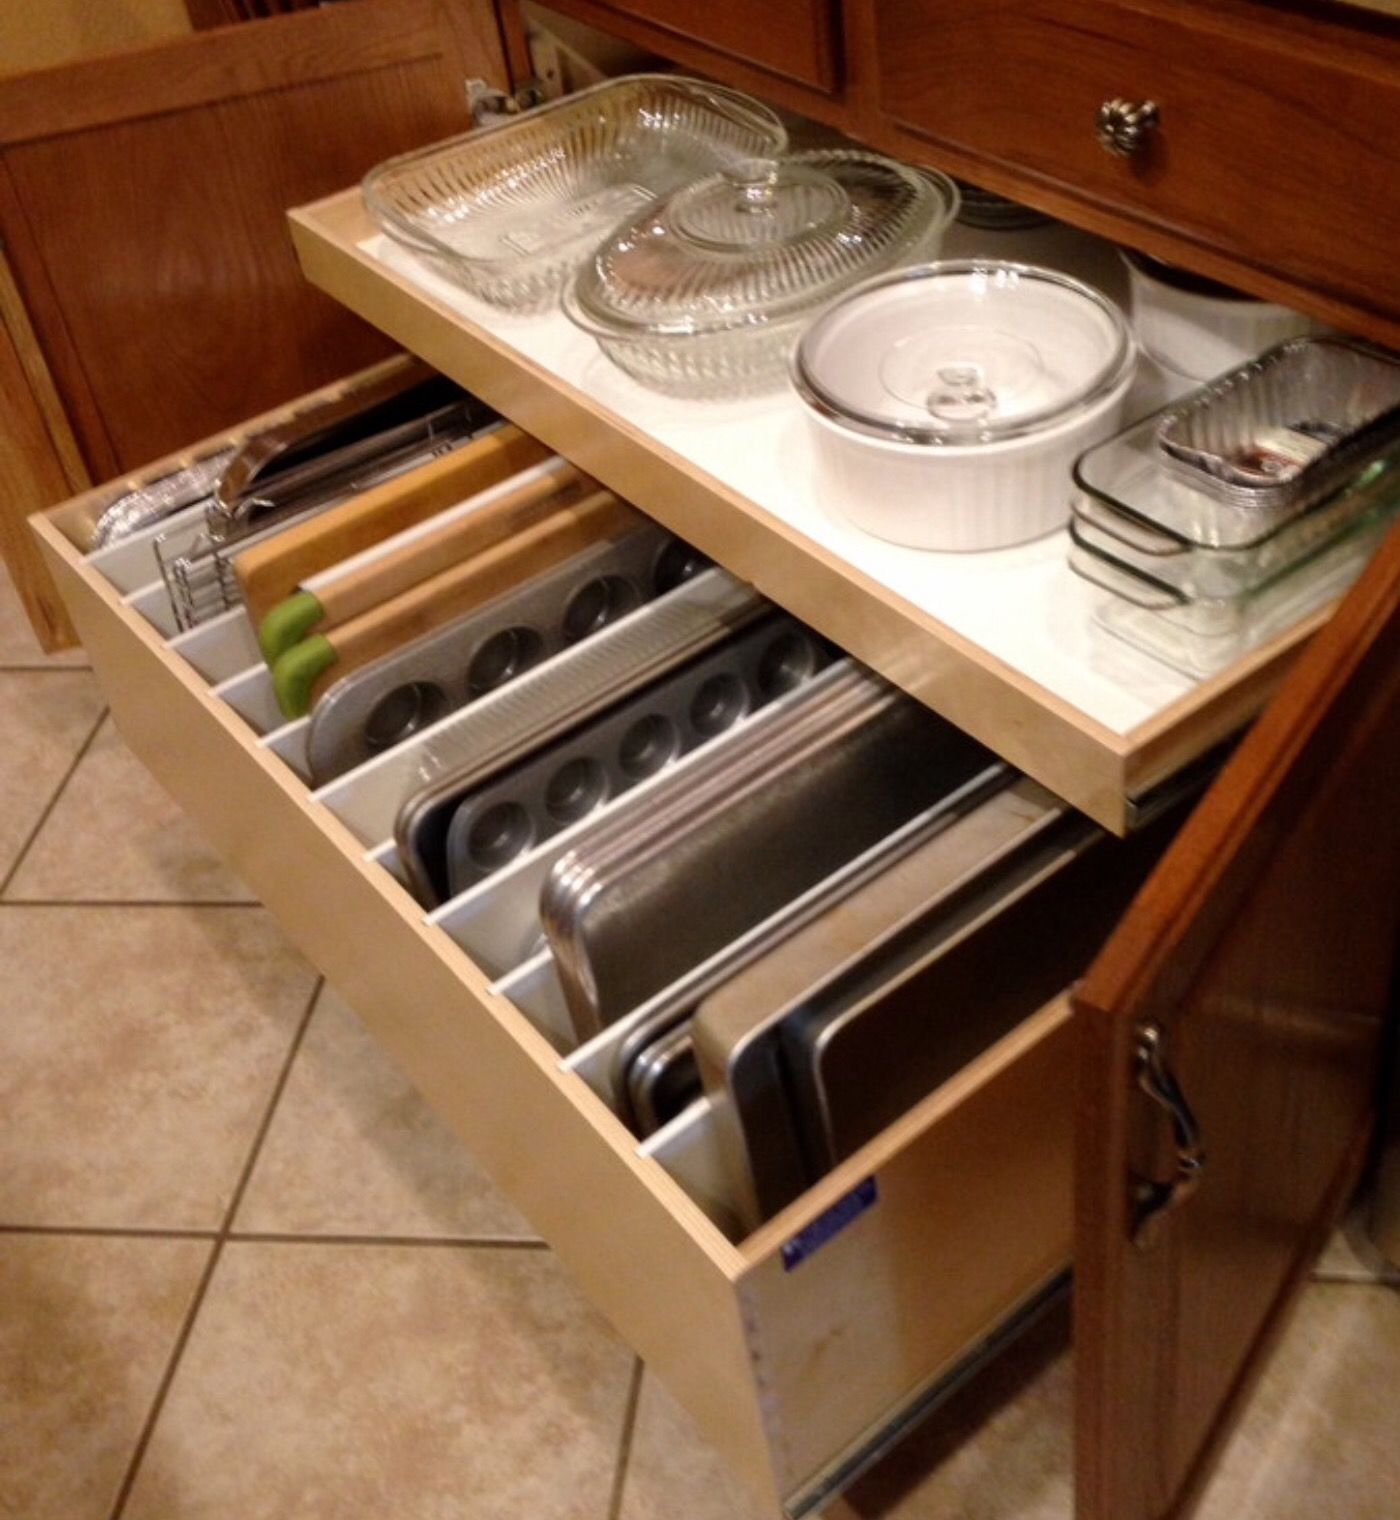 Kitchen cabinet drawer layout future dream home third times the charm pinterest kitchen Drawers in kitchen design